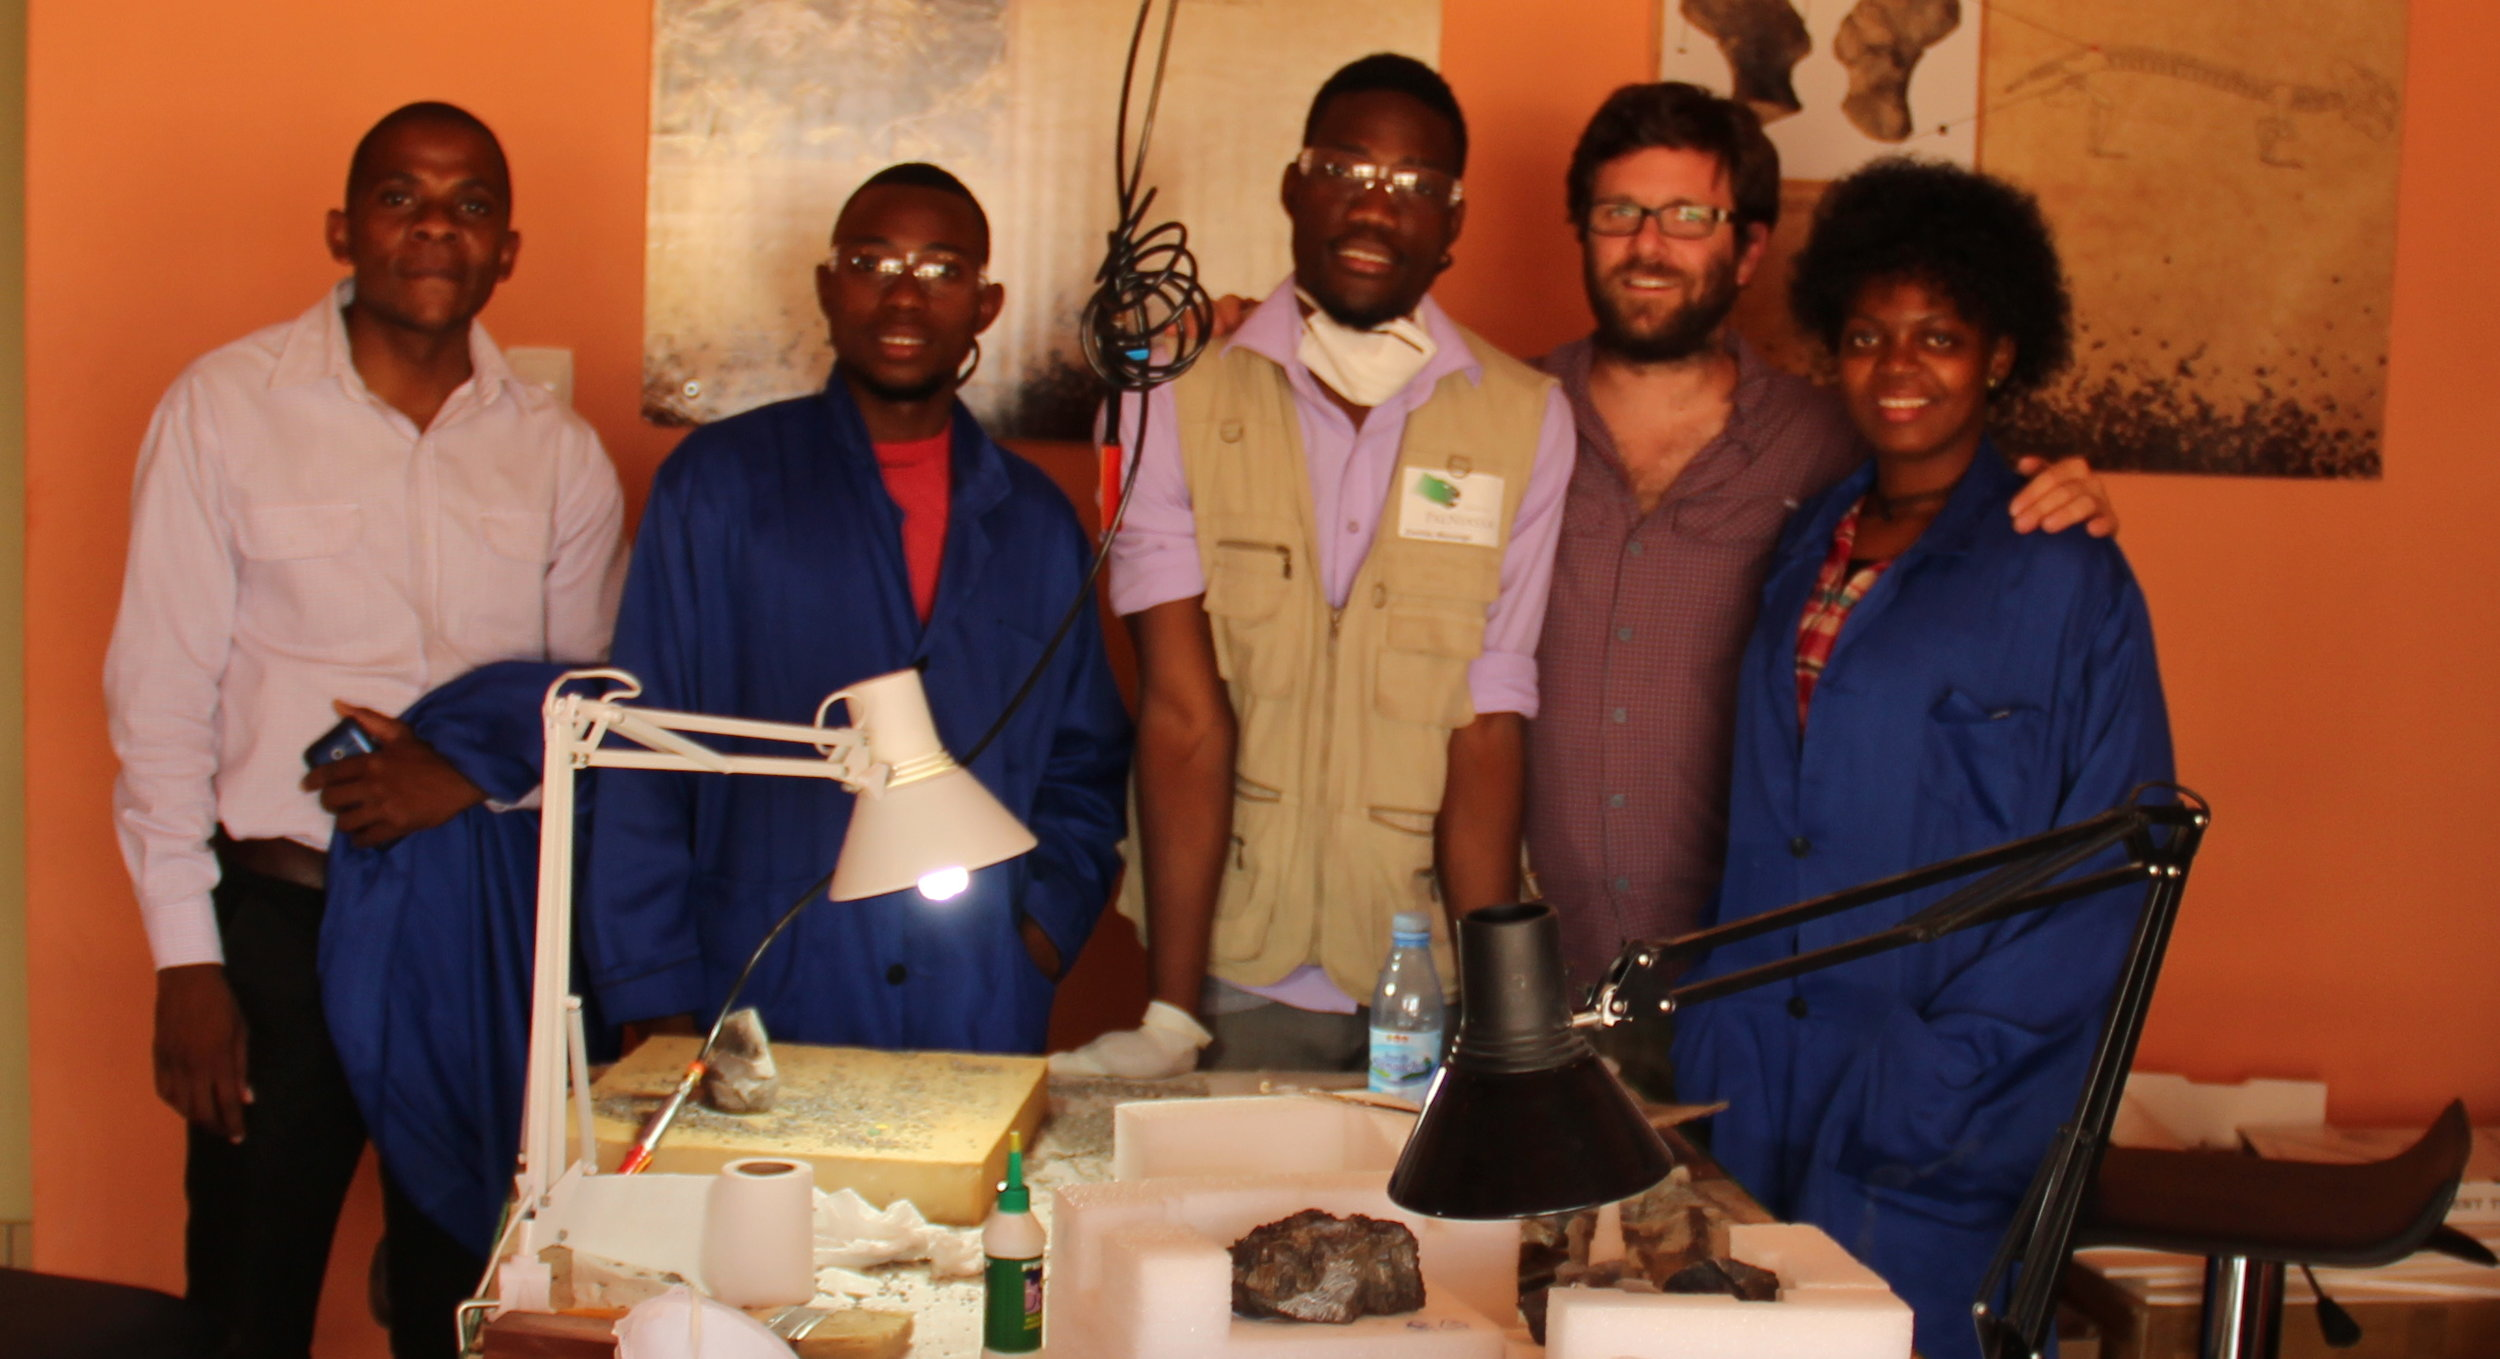 Nelson Nhamutole (co-advisor) on the right, Zanildo Macungo (co-advisor), Mussa Mamad, Ricardo Araújo (PI), Sarita Guluja on the left posing for a picture in the National Laboratory of Paleontology.